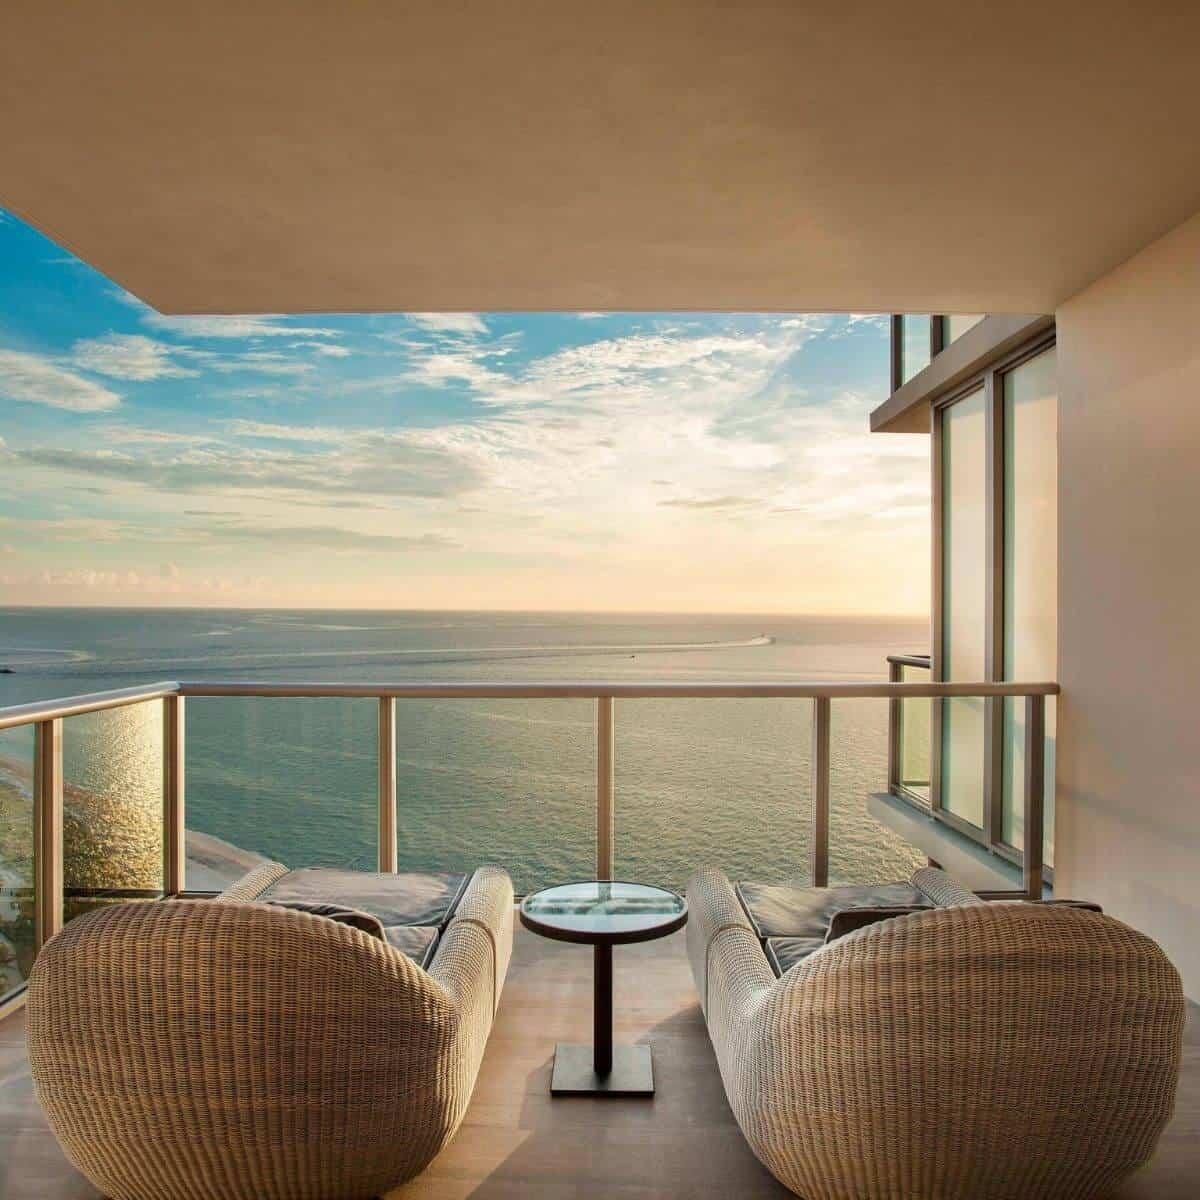 View of a sunset over the ocean from a balcony at the St. Regis Hotel in Bal Harbour.